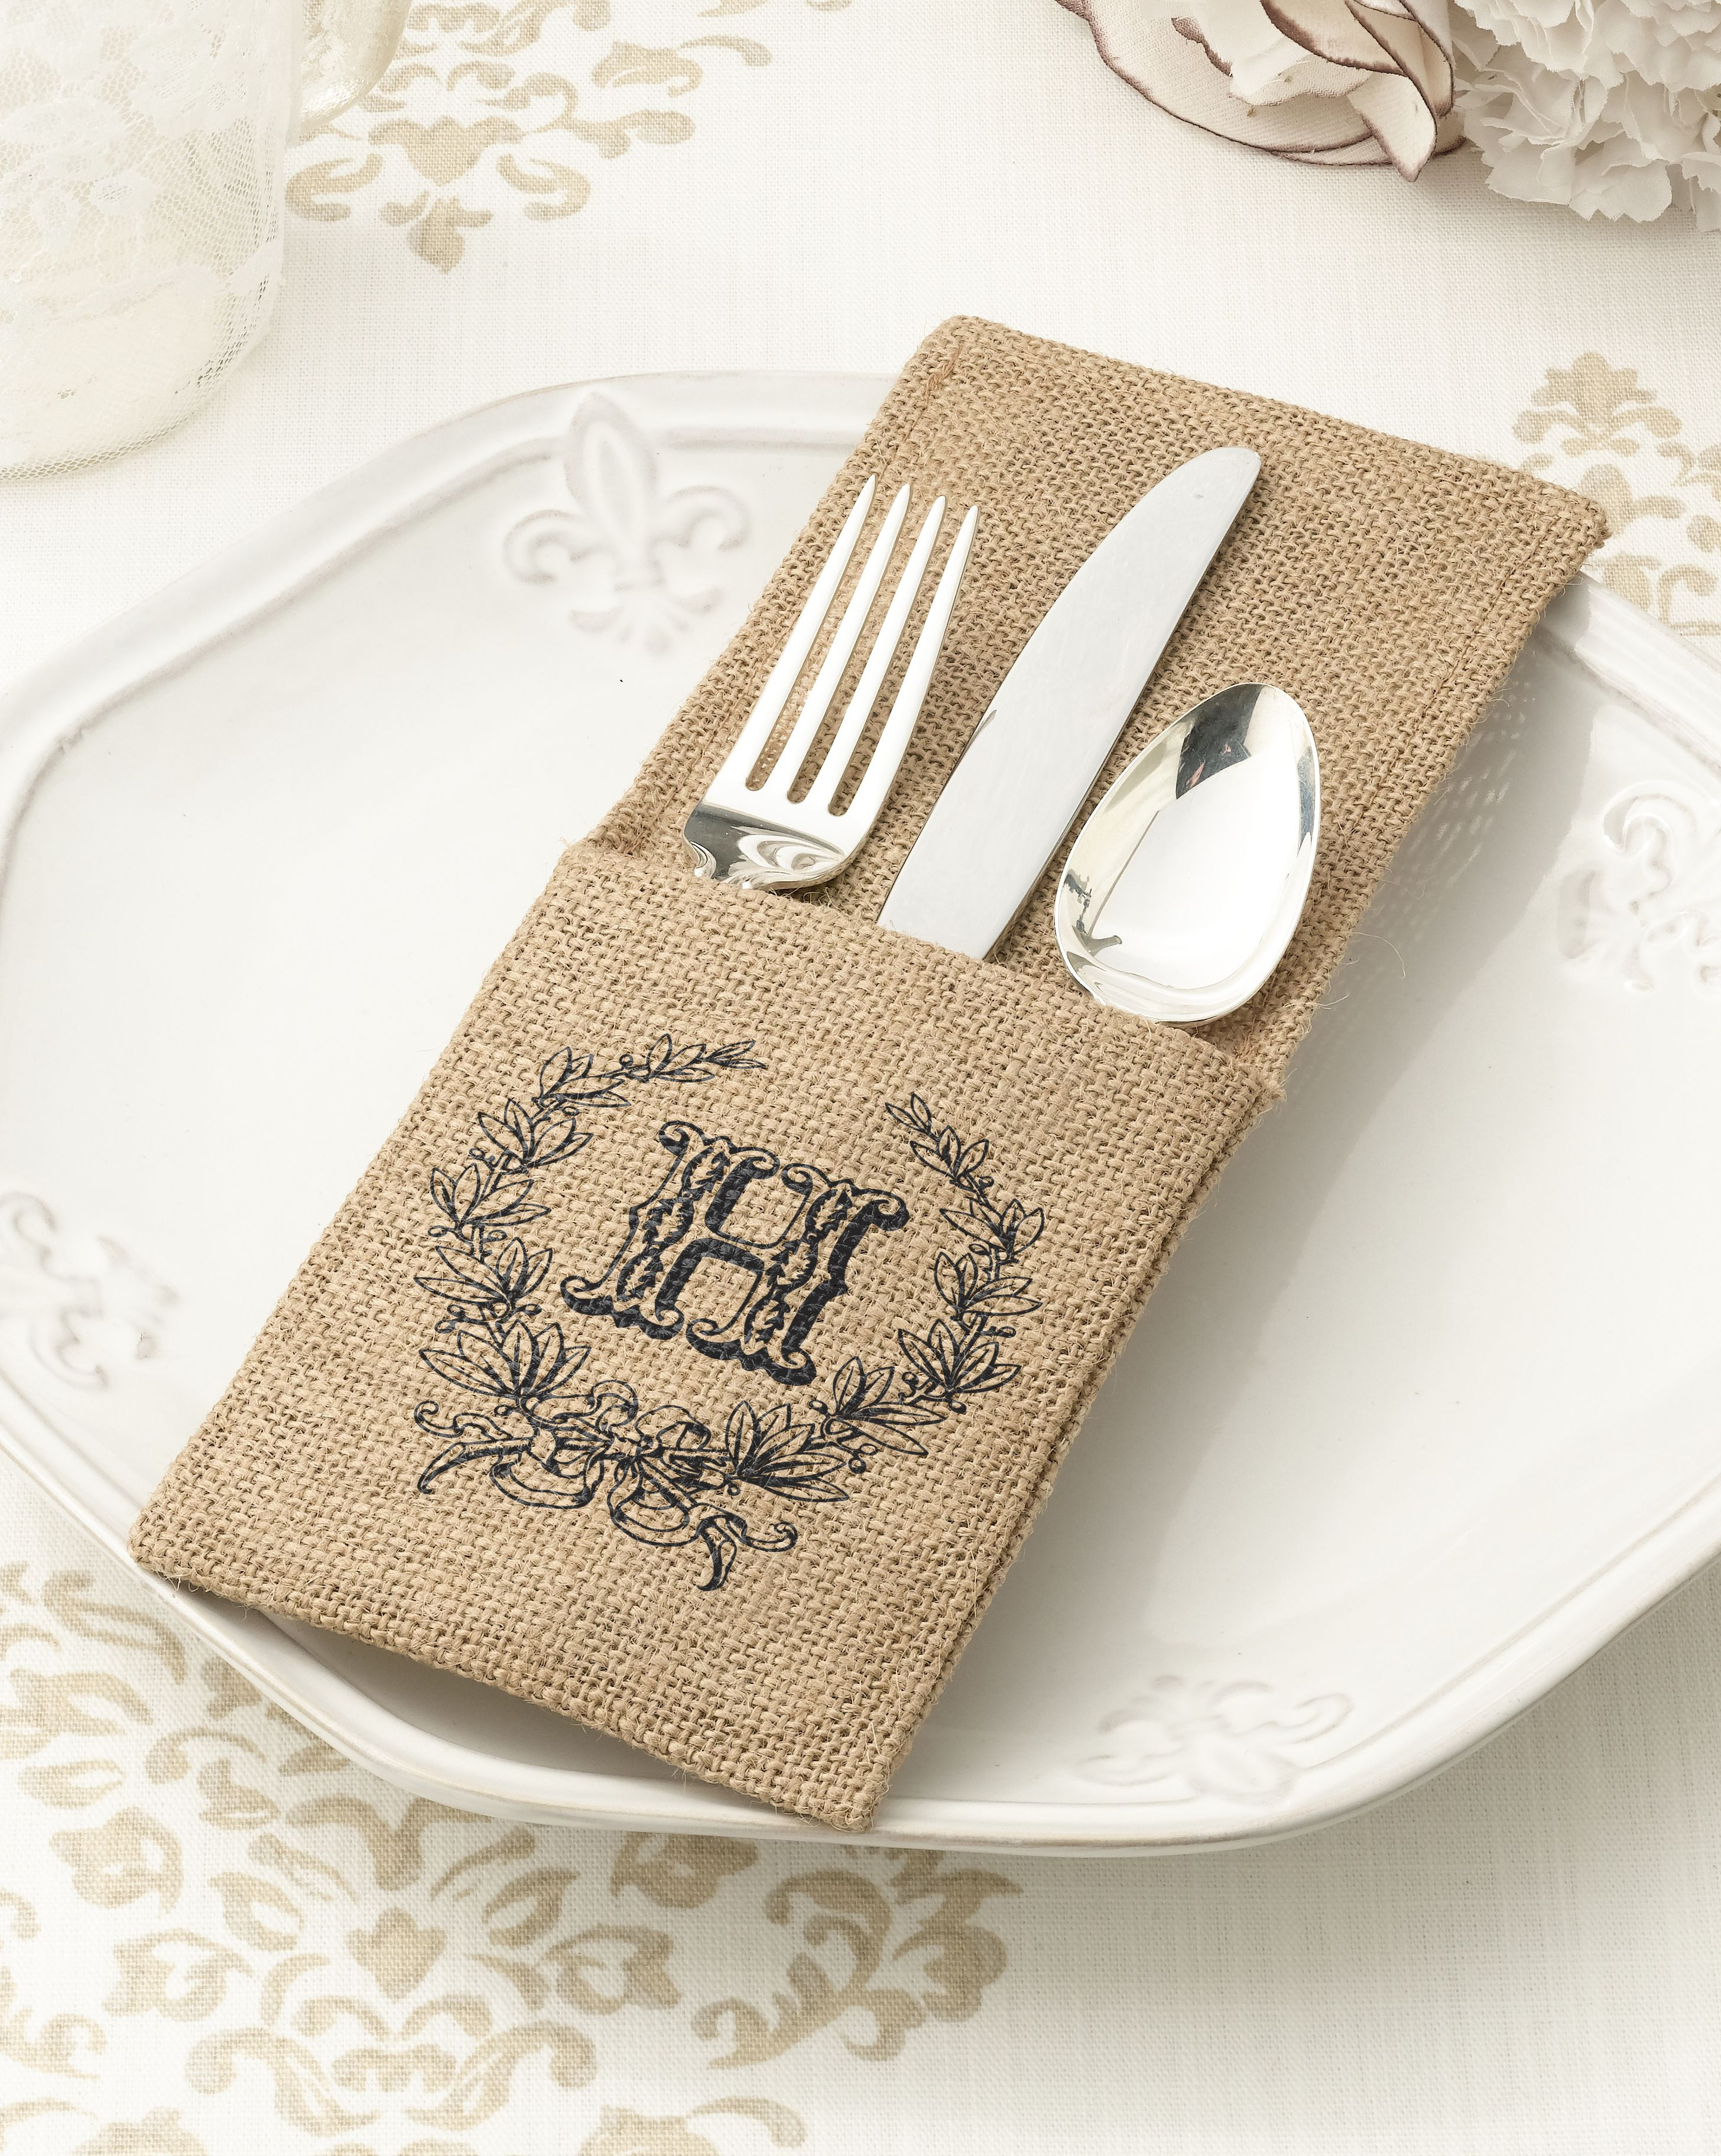 Decorate Your Wedding Tablescape With Personalized Burlap